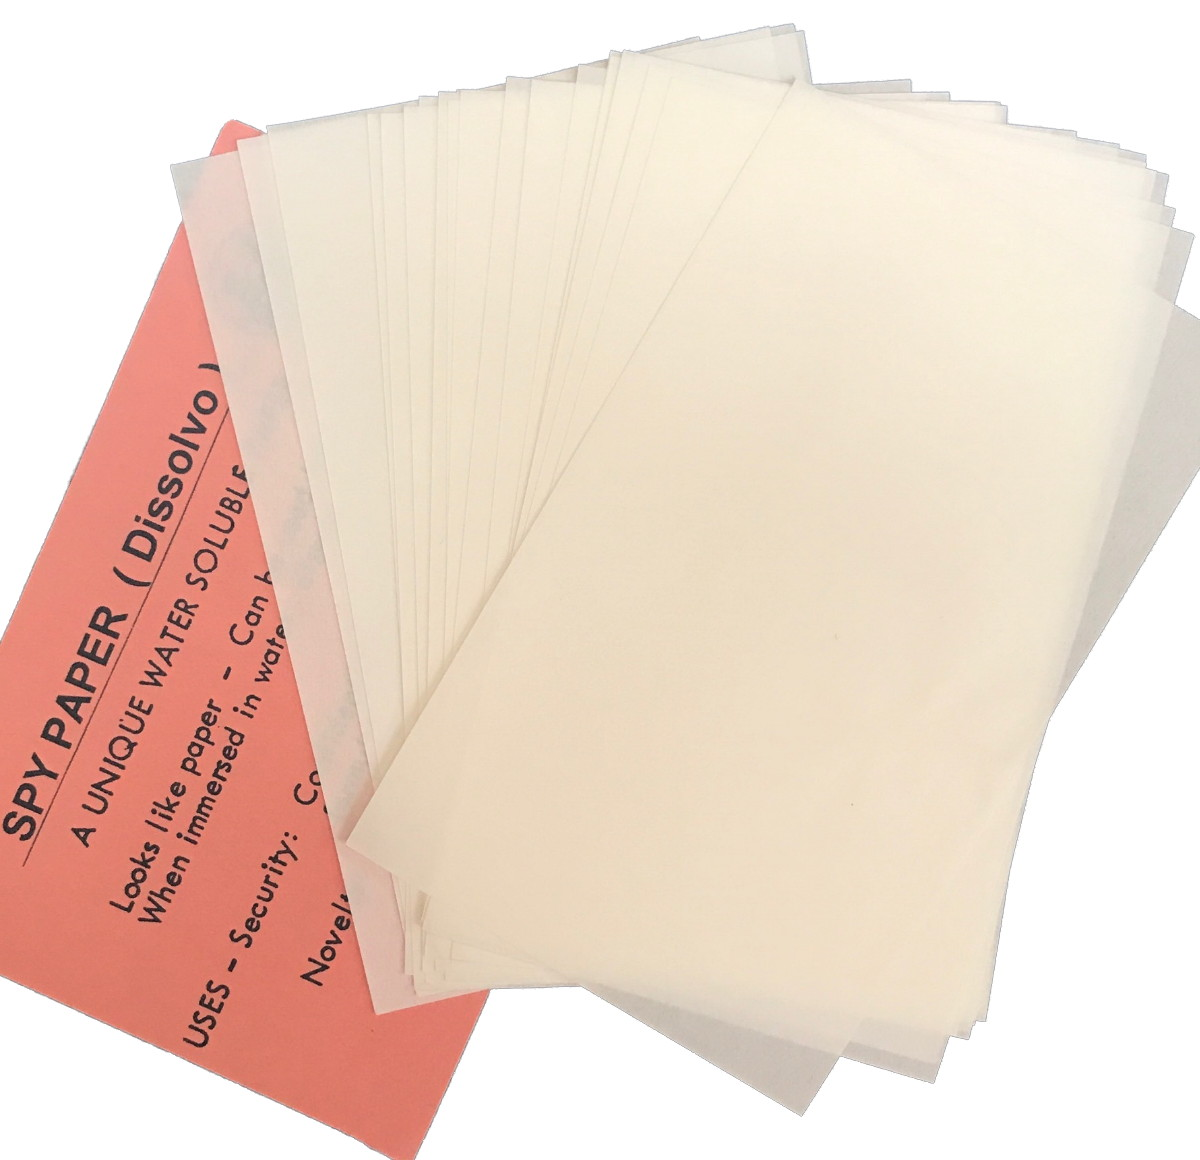 Spy Paper Dissolvo - Bulk Pack of 100 pcs